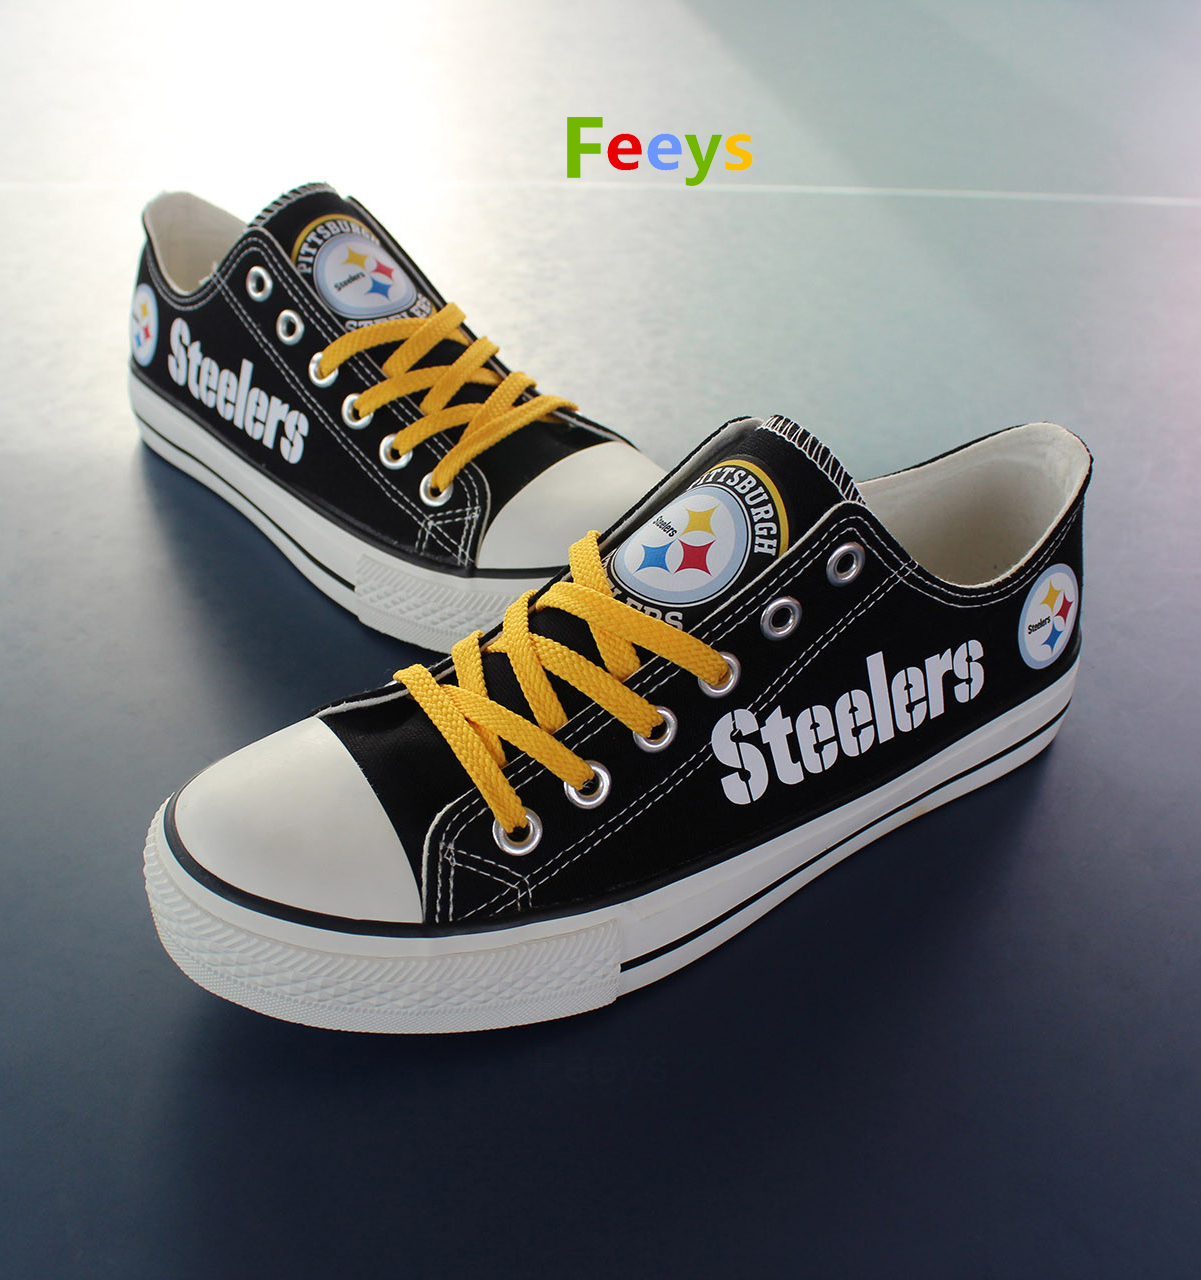 deb0a1c065c Steelers shoes womens sneakers pittsburgh and 50 similar items. Img 2006